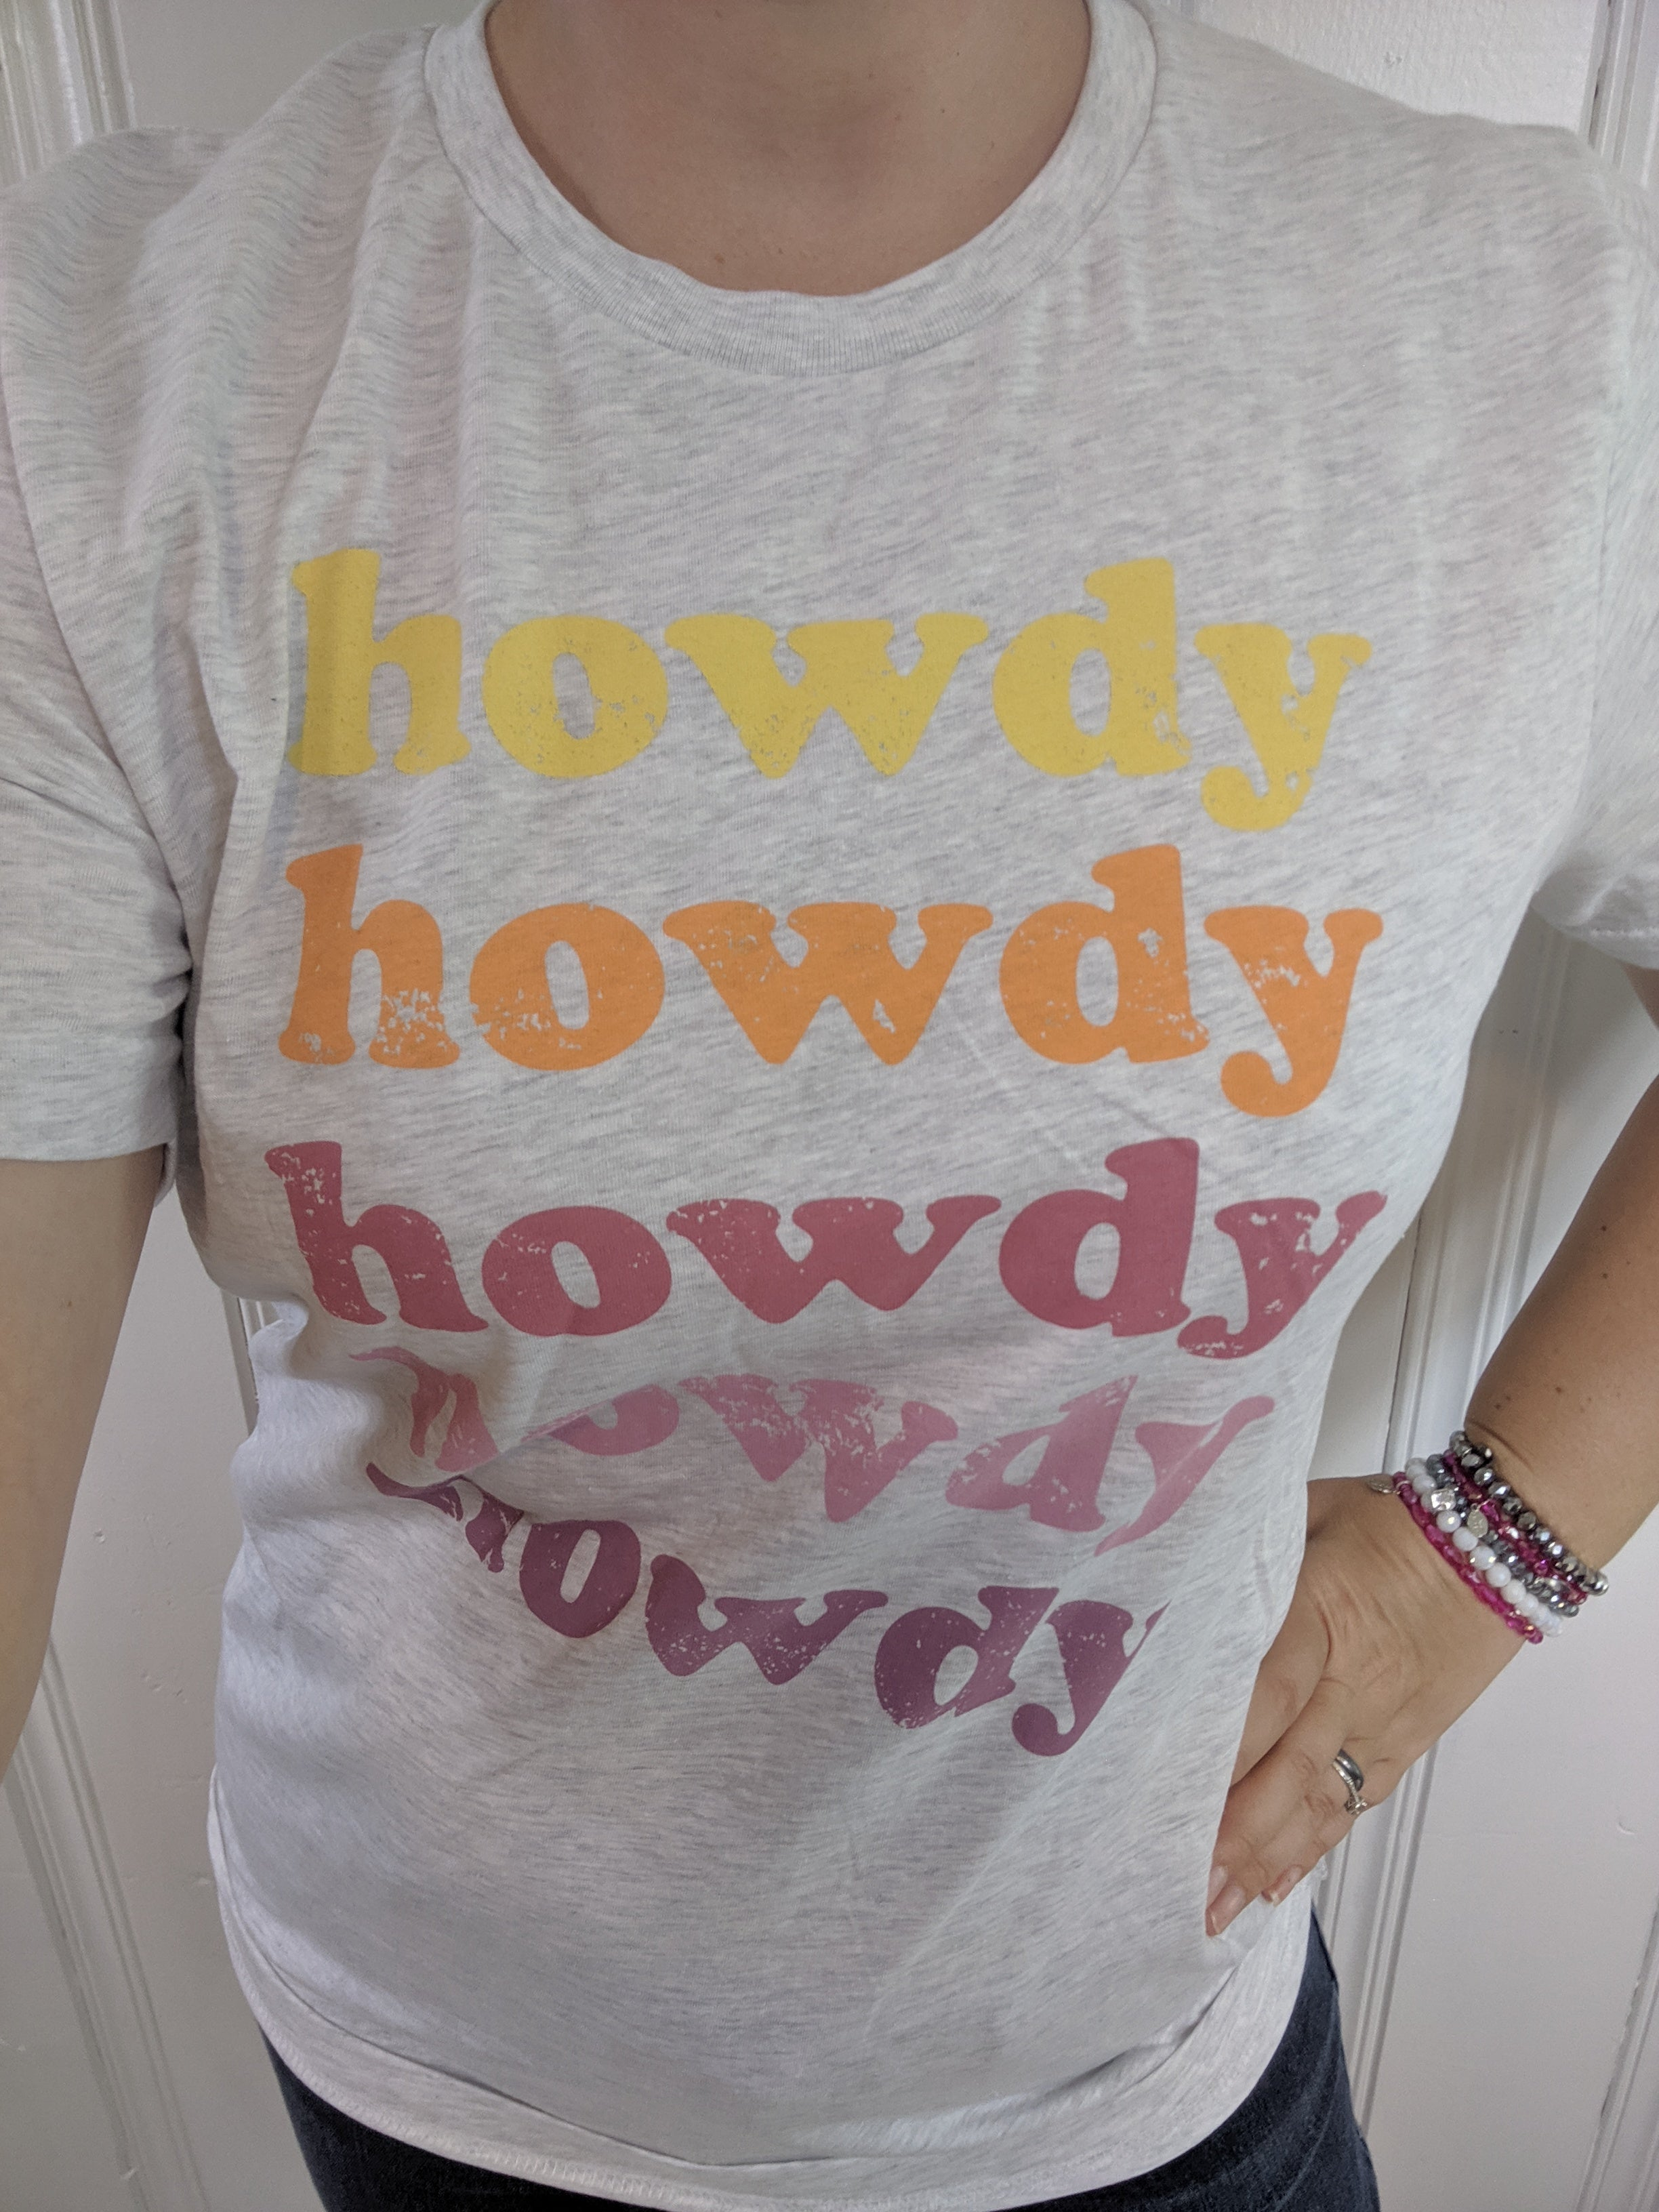 Howdy Graphic Shirt